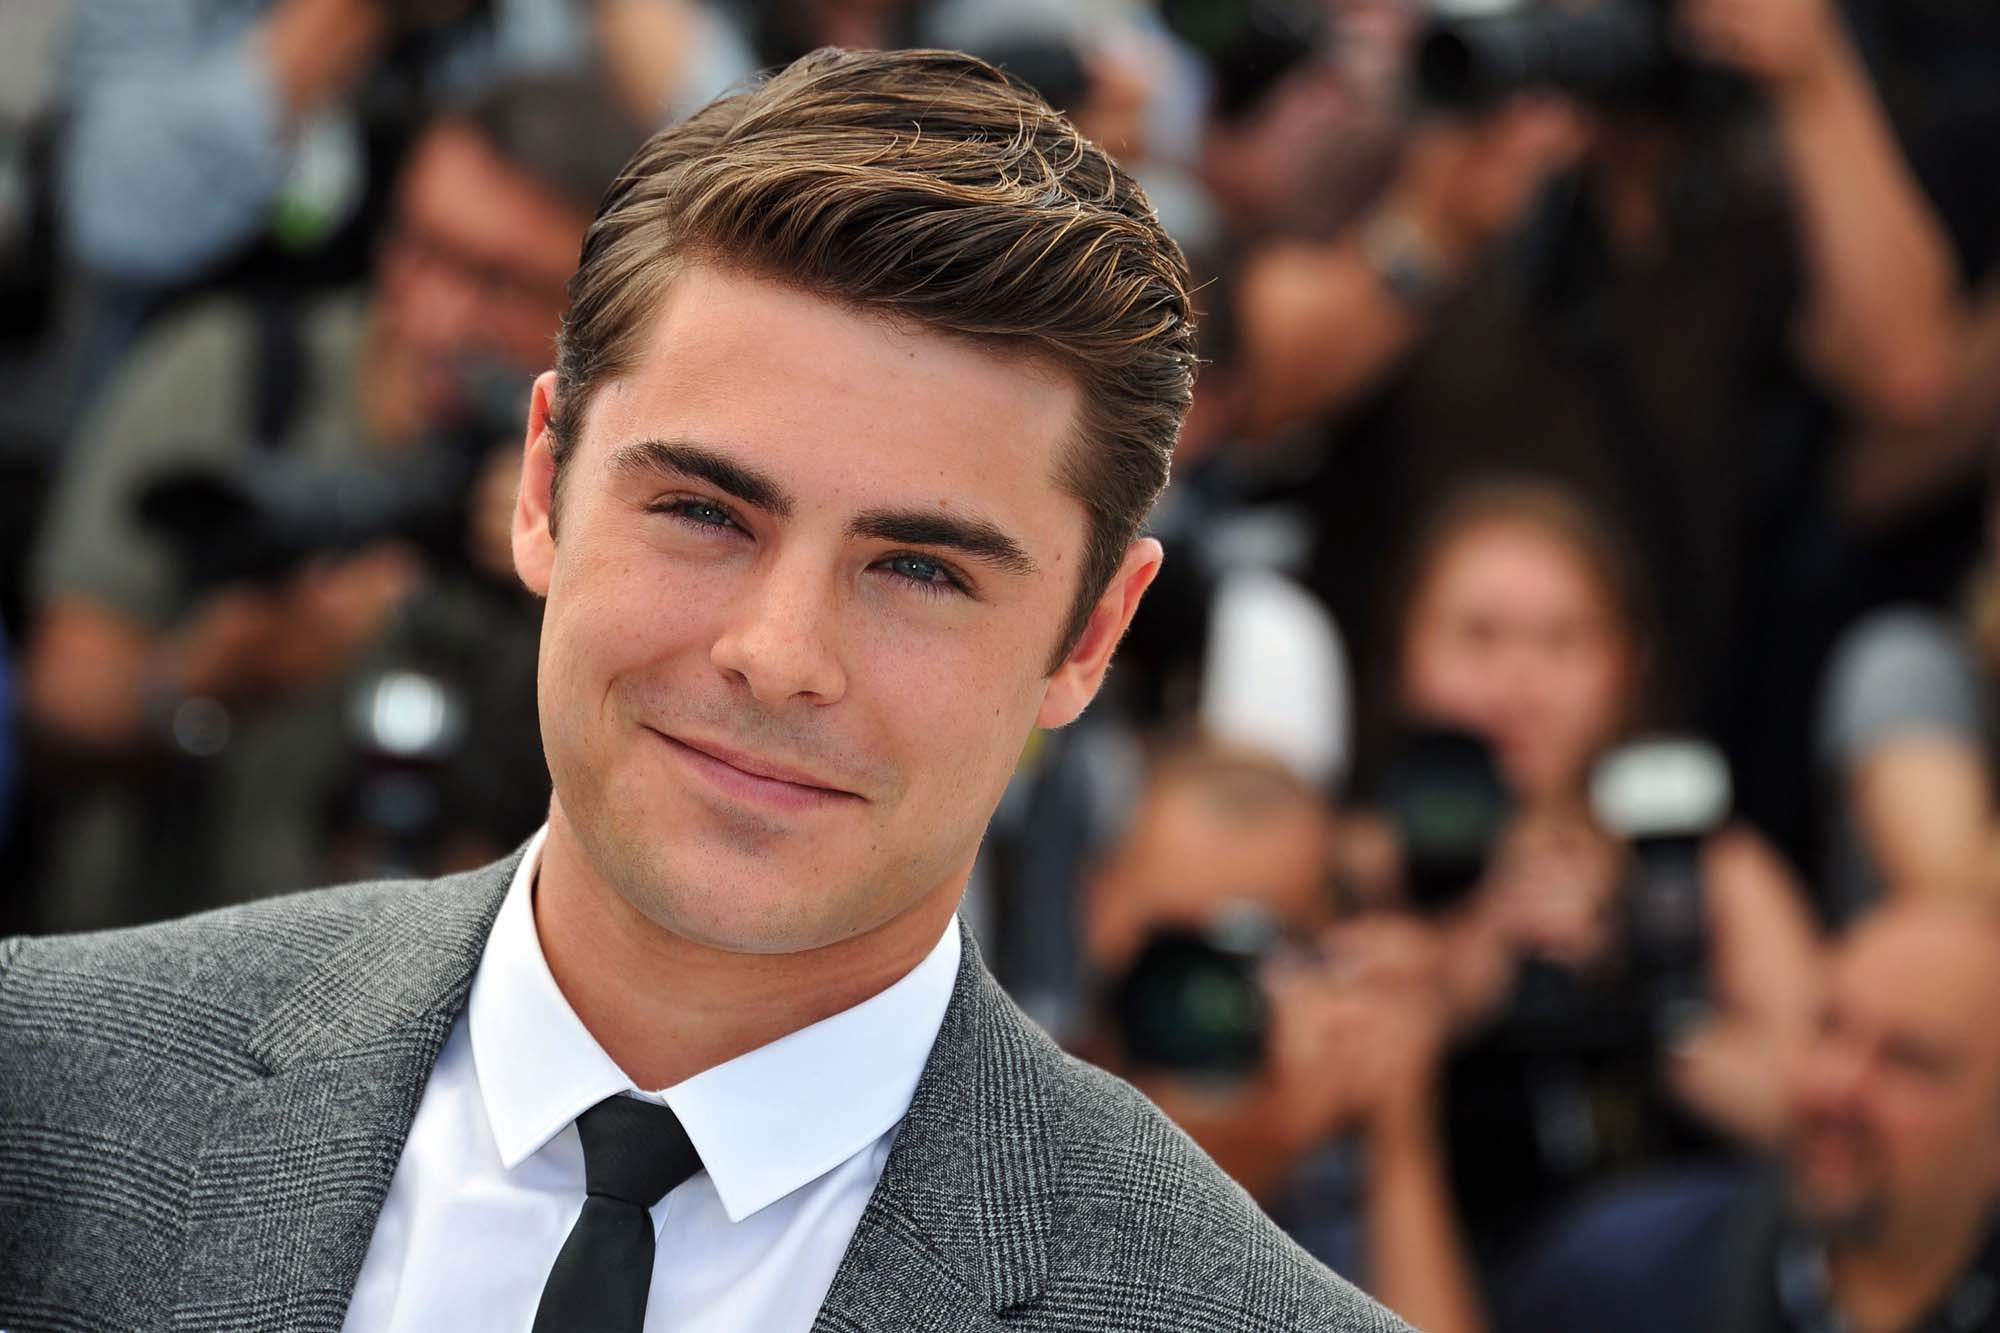 Zac efron joins baywatch cast film news conversations about her zac efron joins baywatch cast film news stopboris Image collections